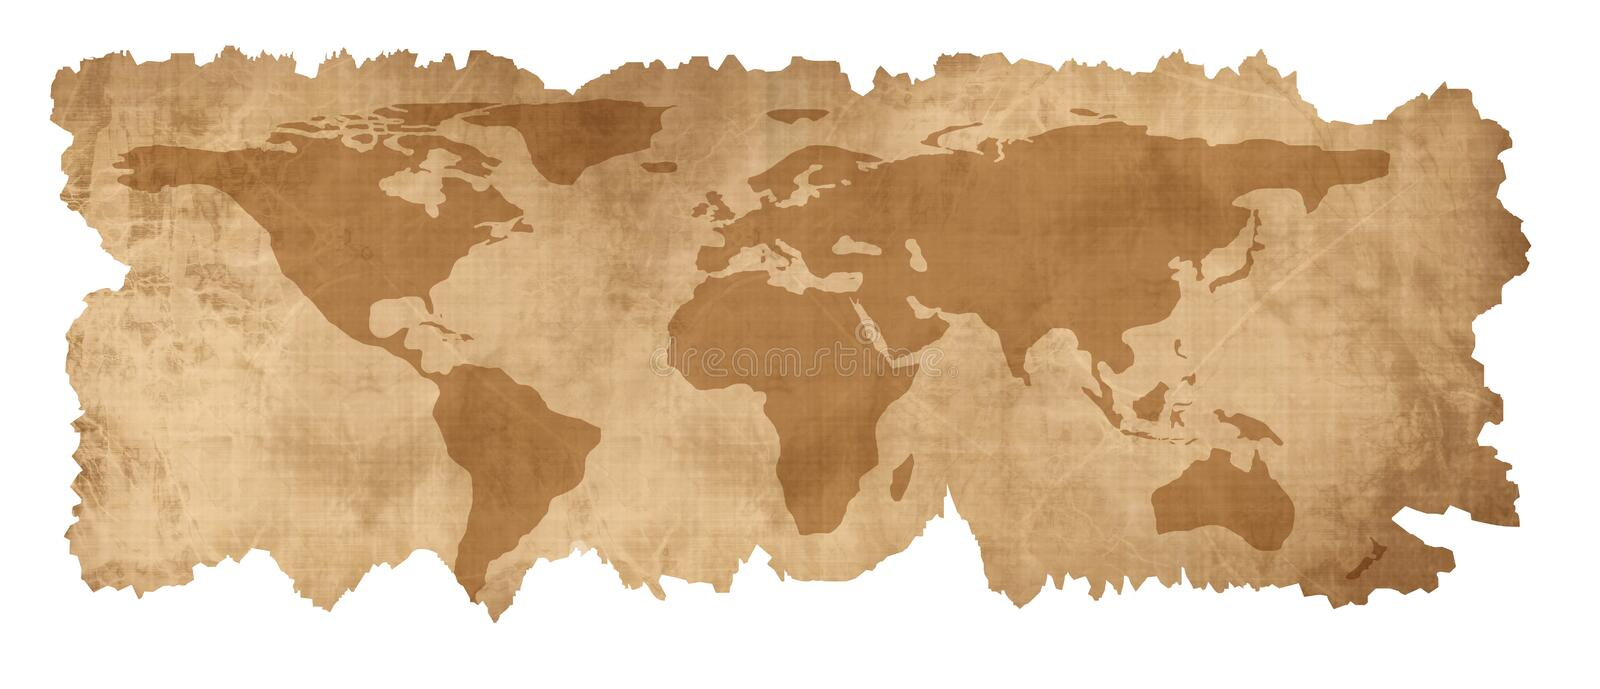 Download Old Paper Map Stock Images - Image: 5027994